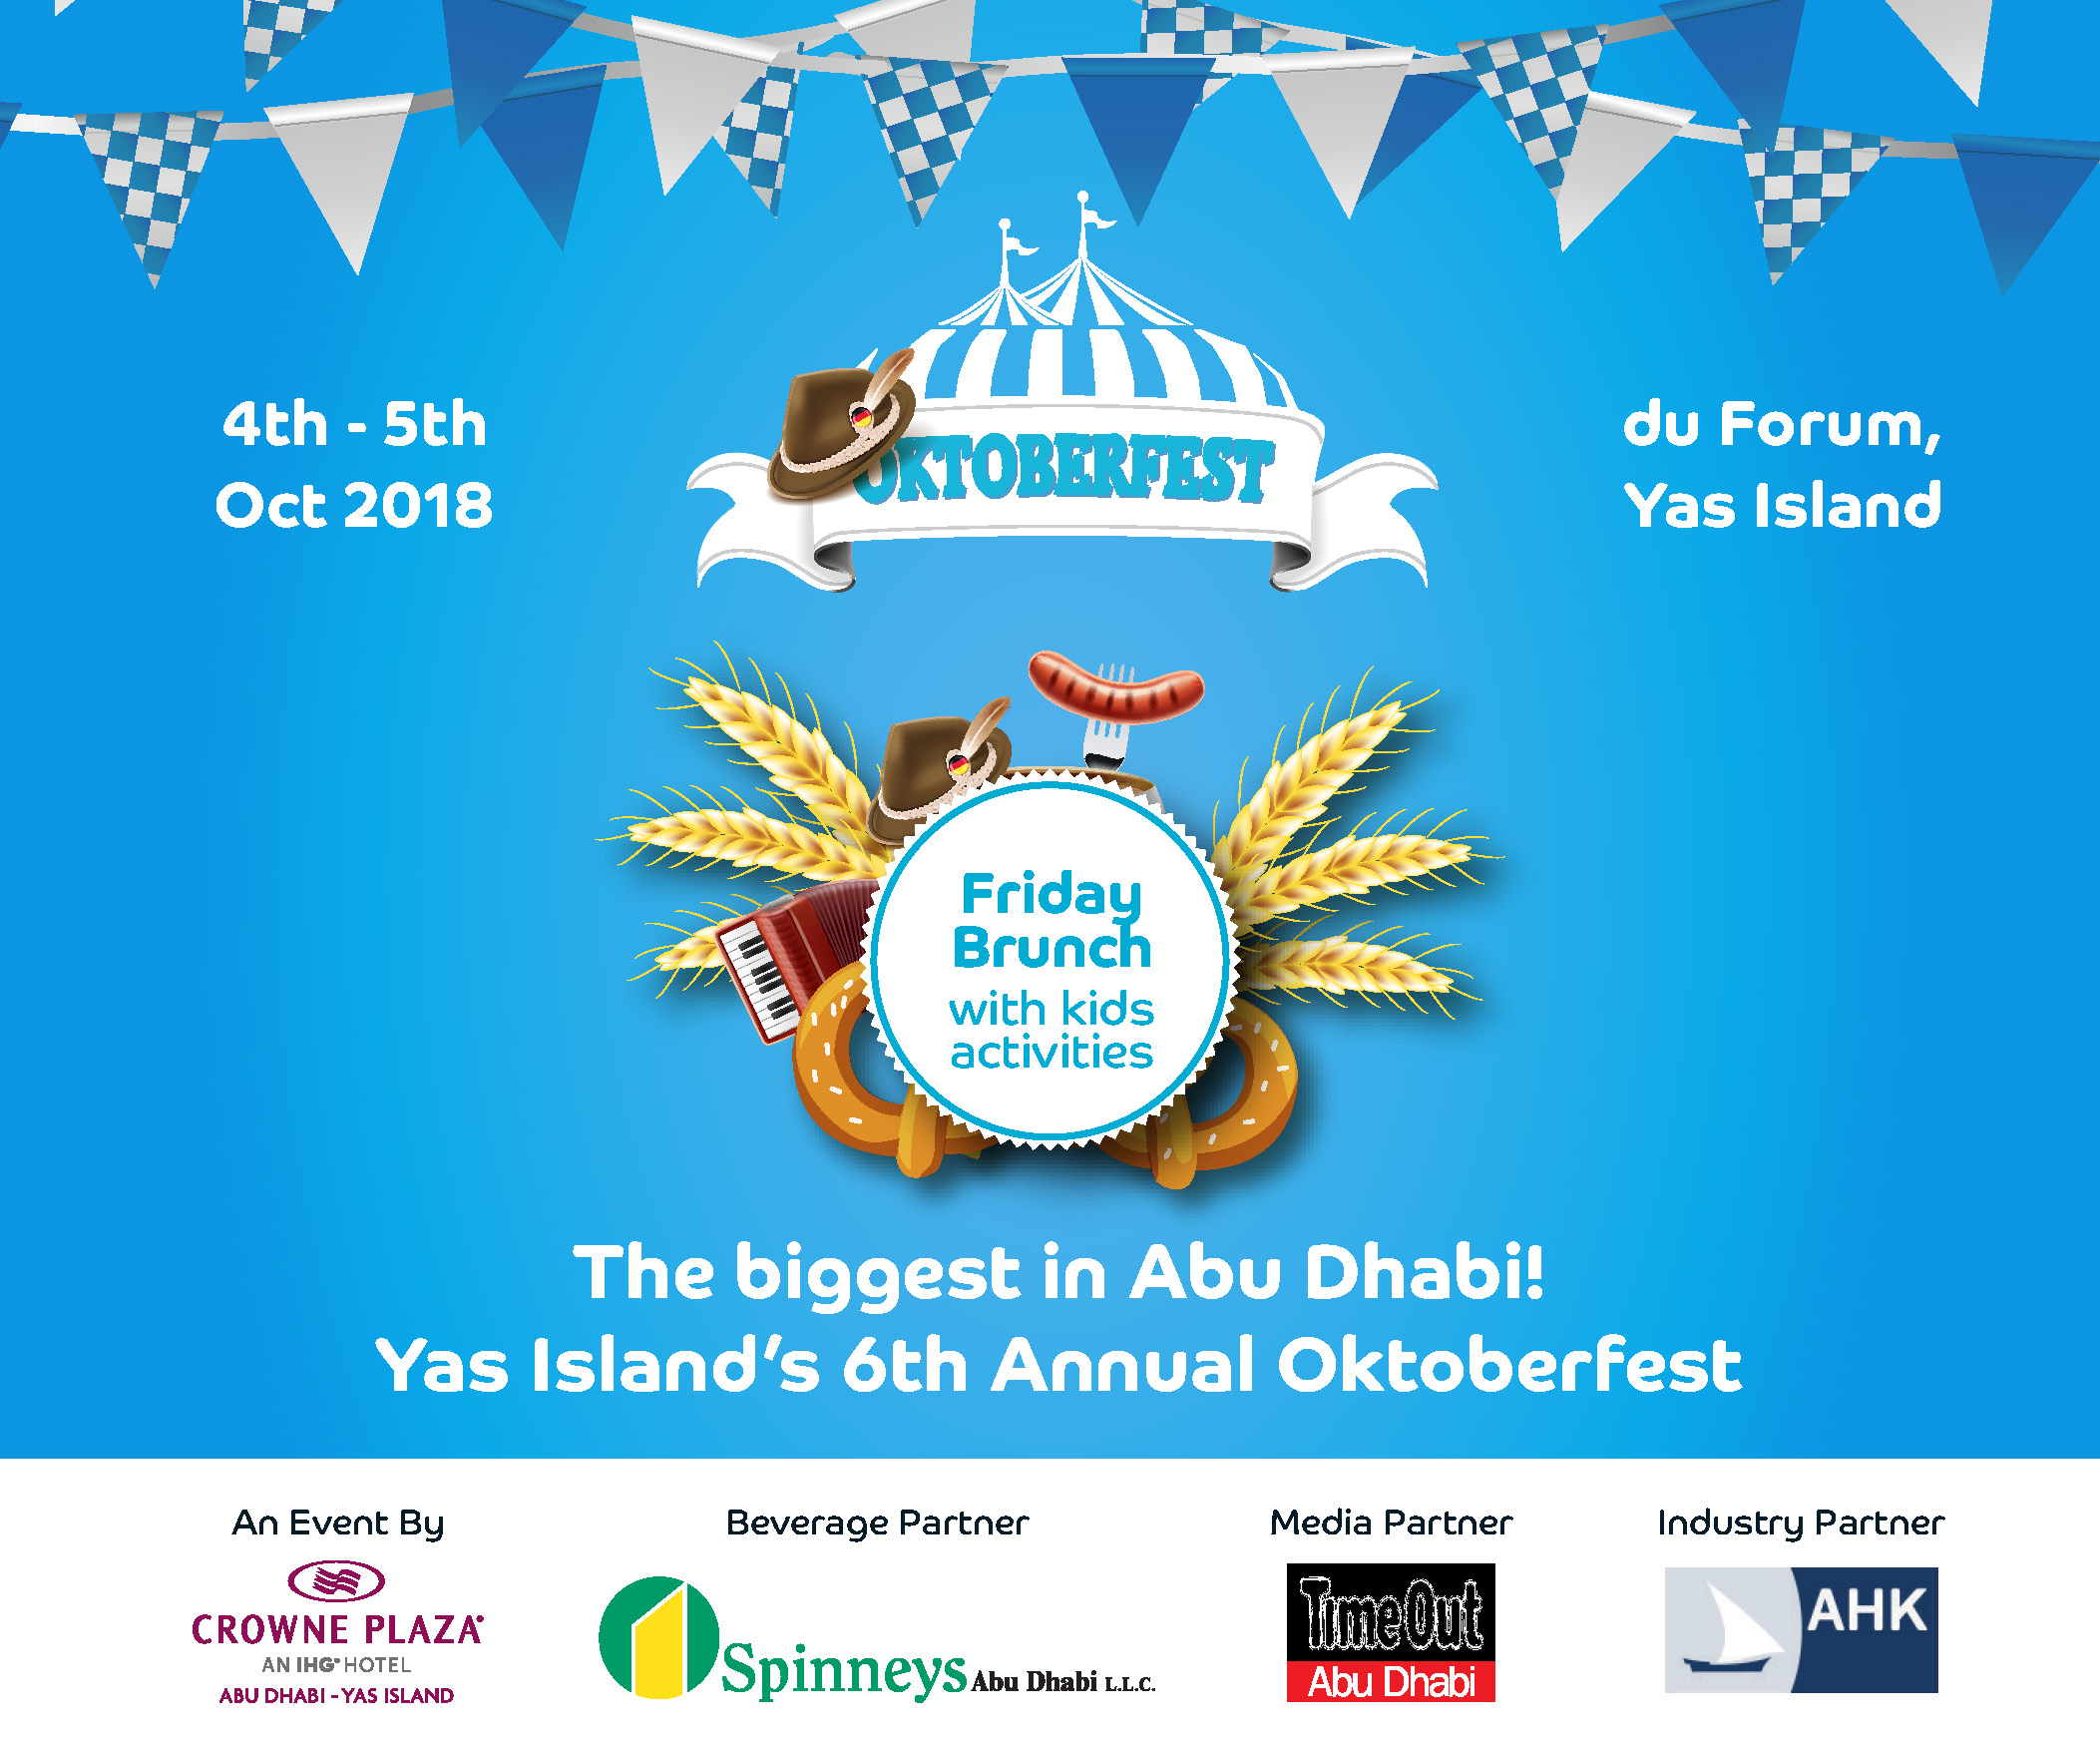 6th Annual Oktoberfest on Yas Island